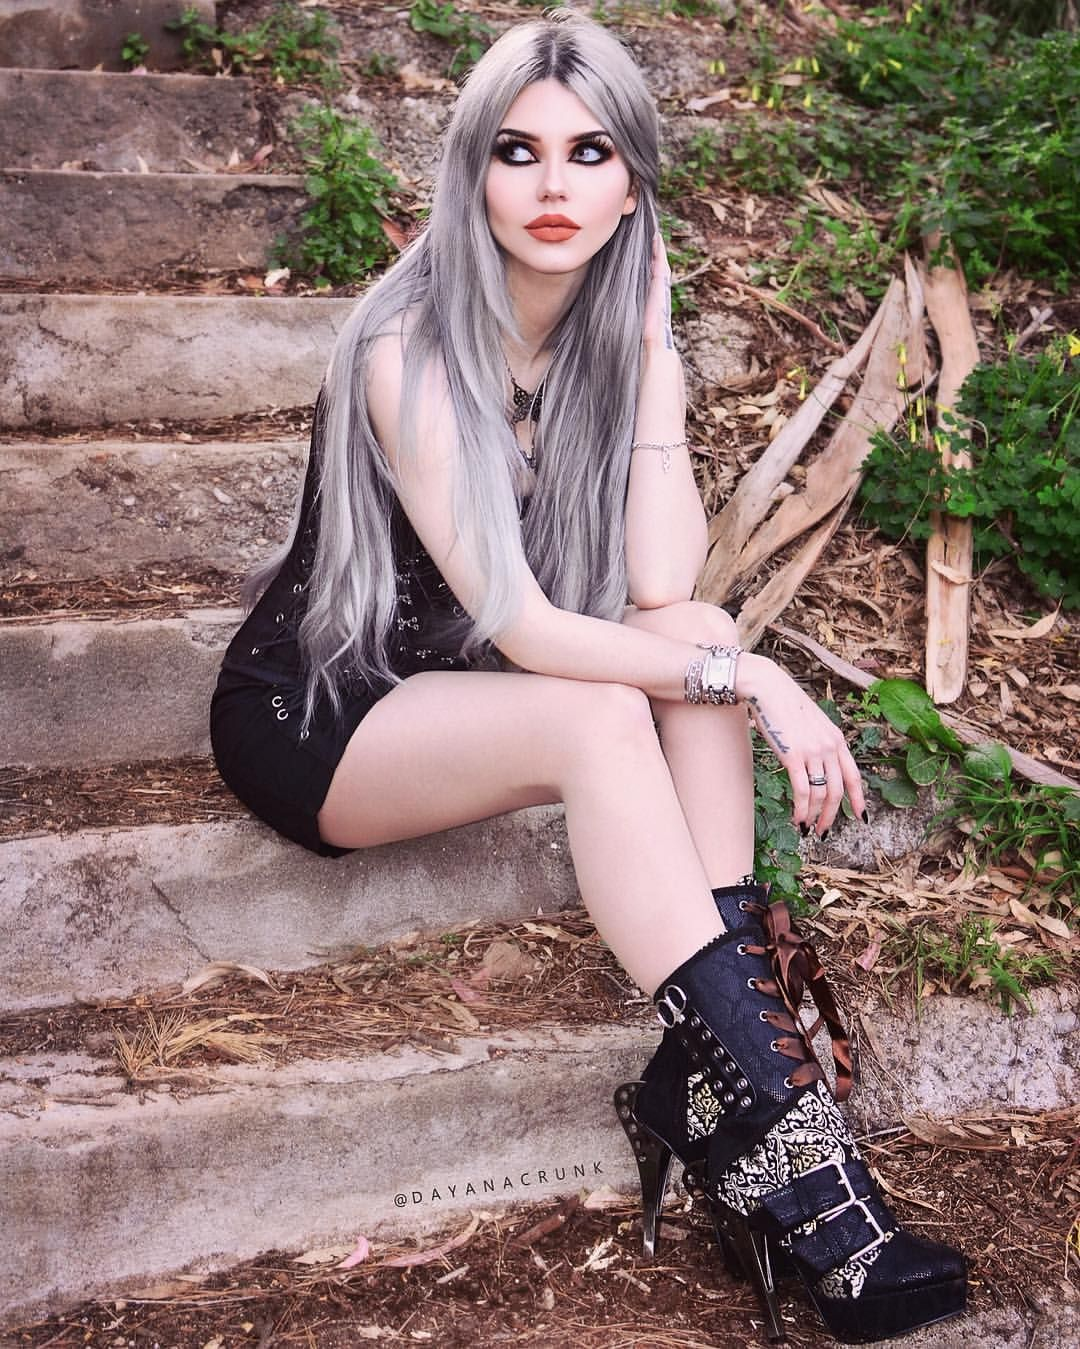 Pin About Gothic Fashion On Gothic In 2019: Pin By Dolomite On Dayana Crunk